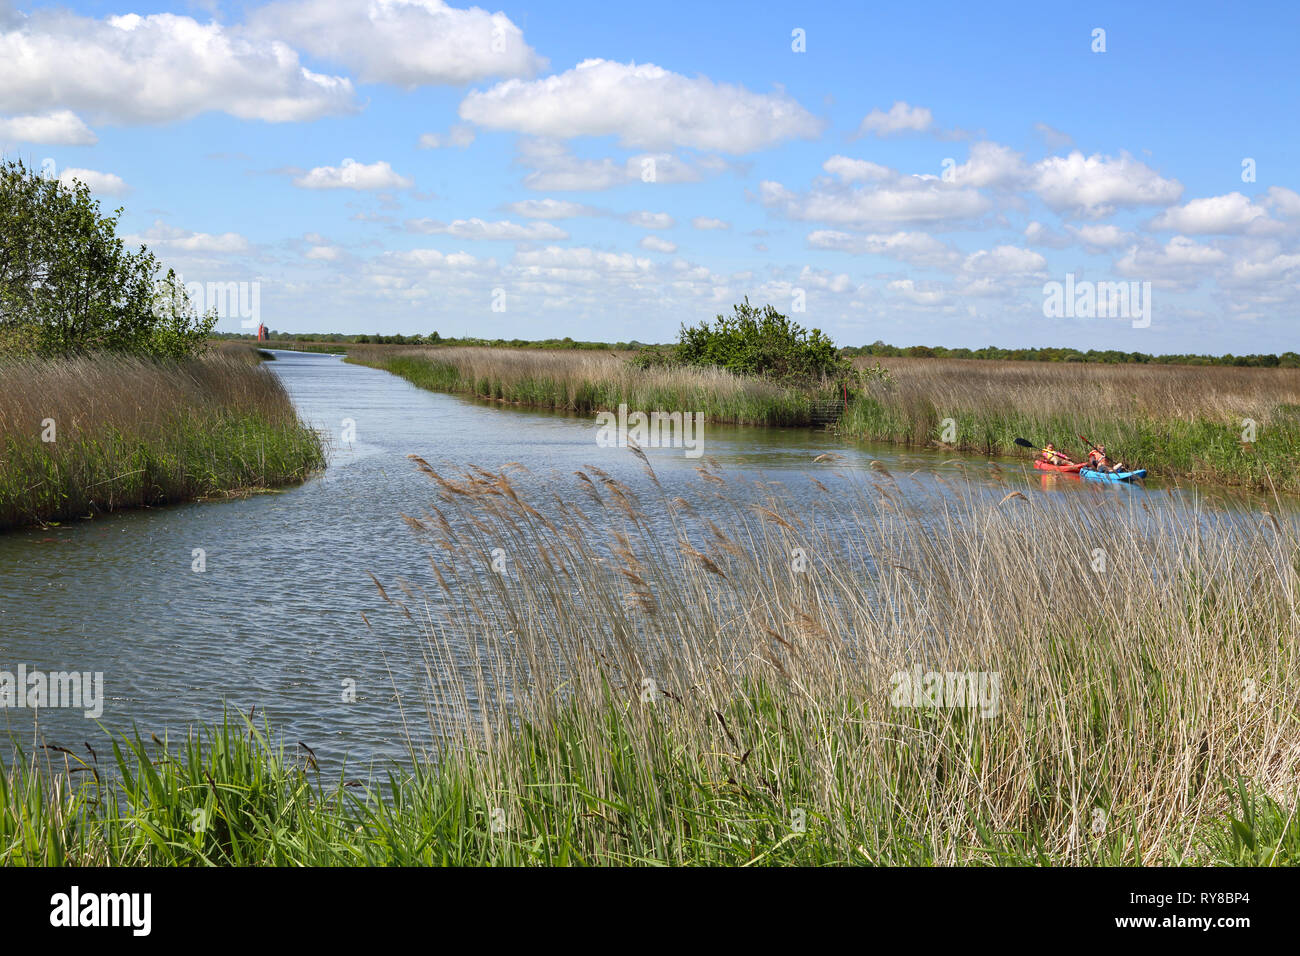 canoeing on martham broad near west somerton in Norfolk - Stock Image